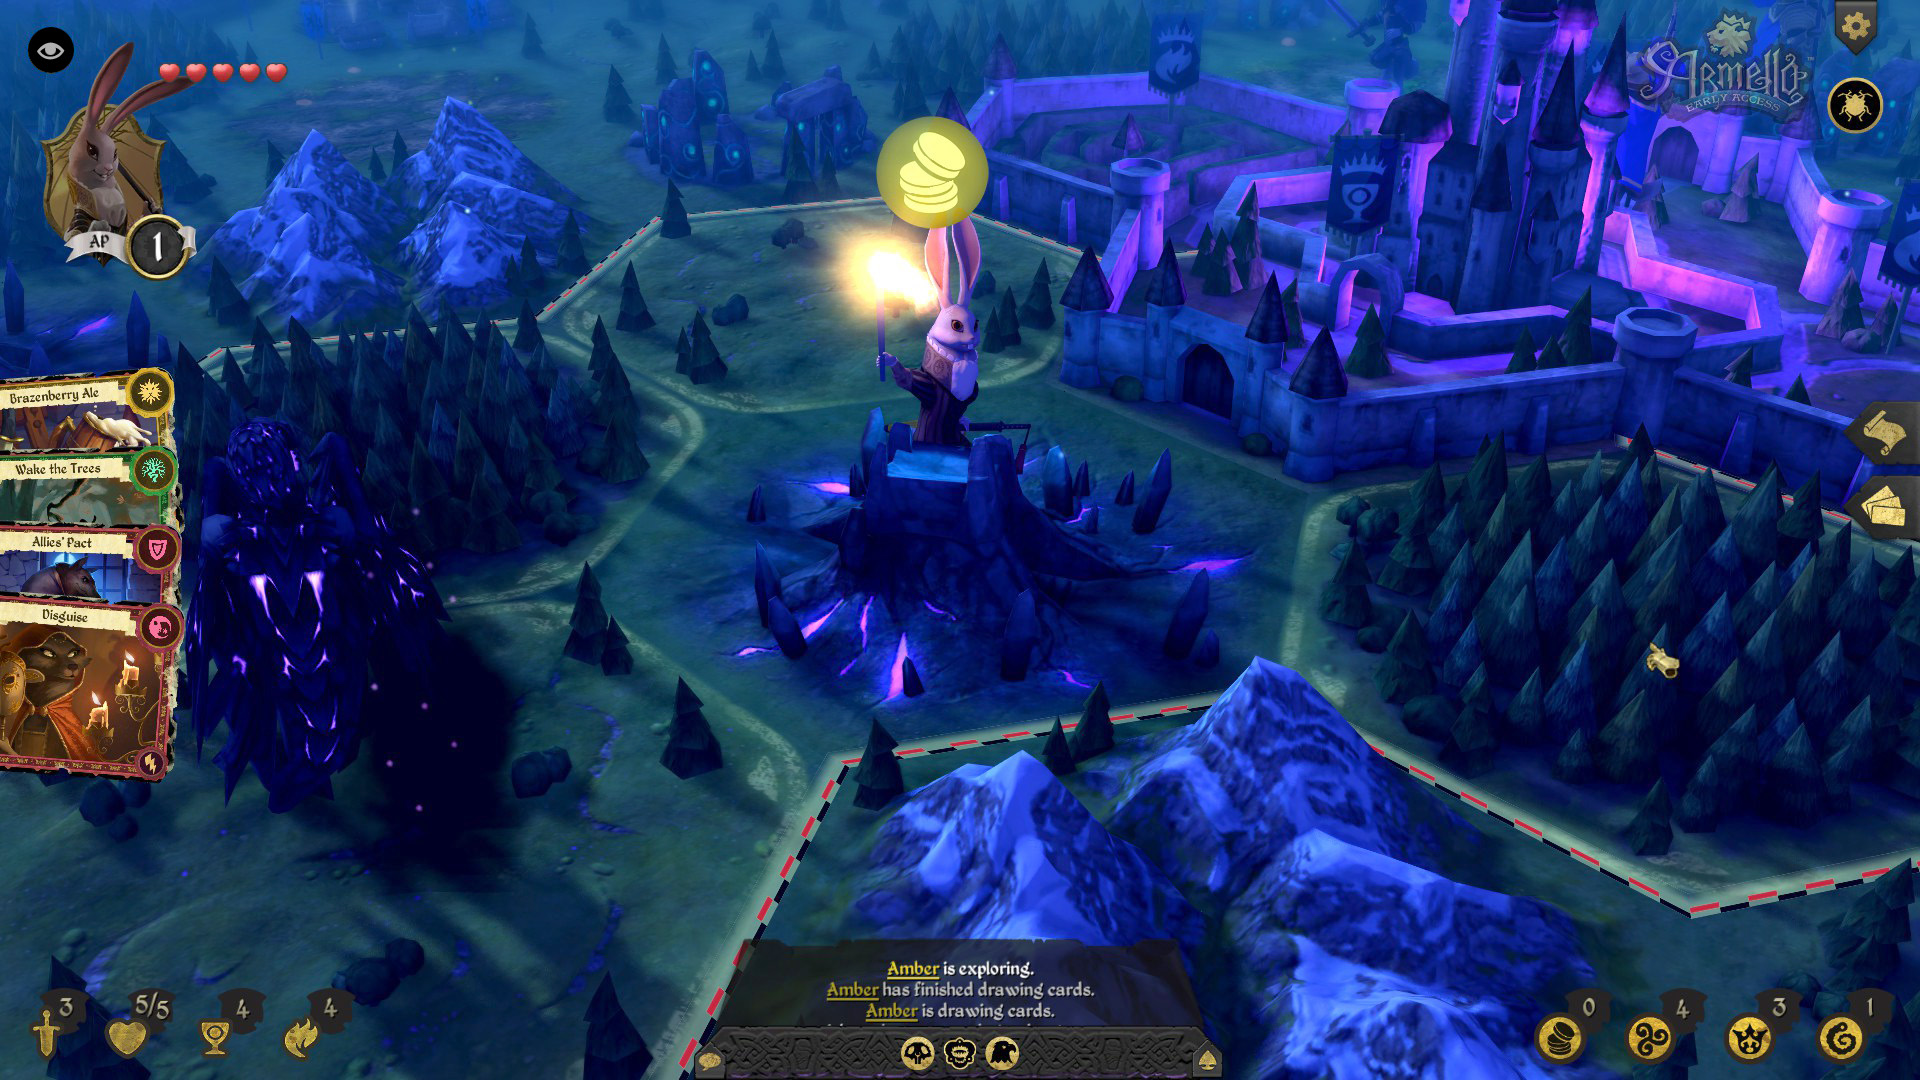 Armello: one studio's vision to breathe life into the digital tabletop